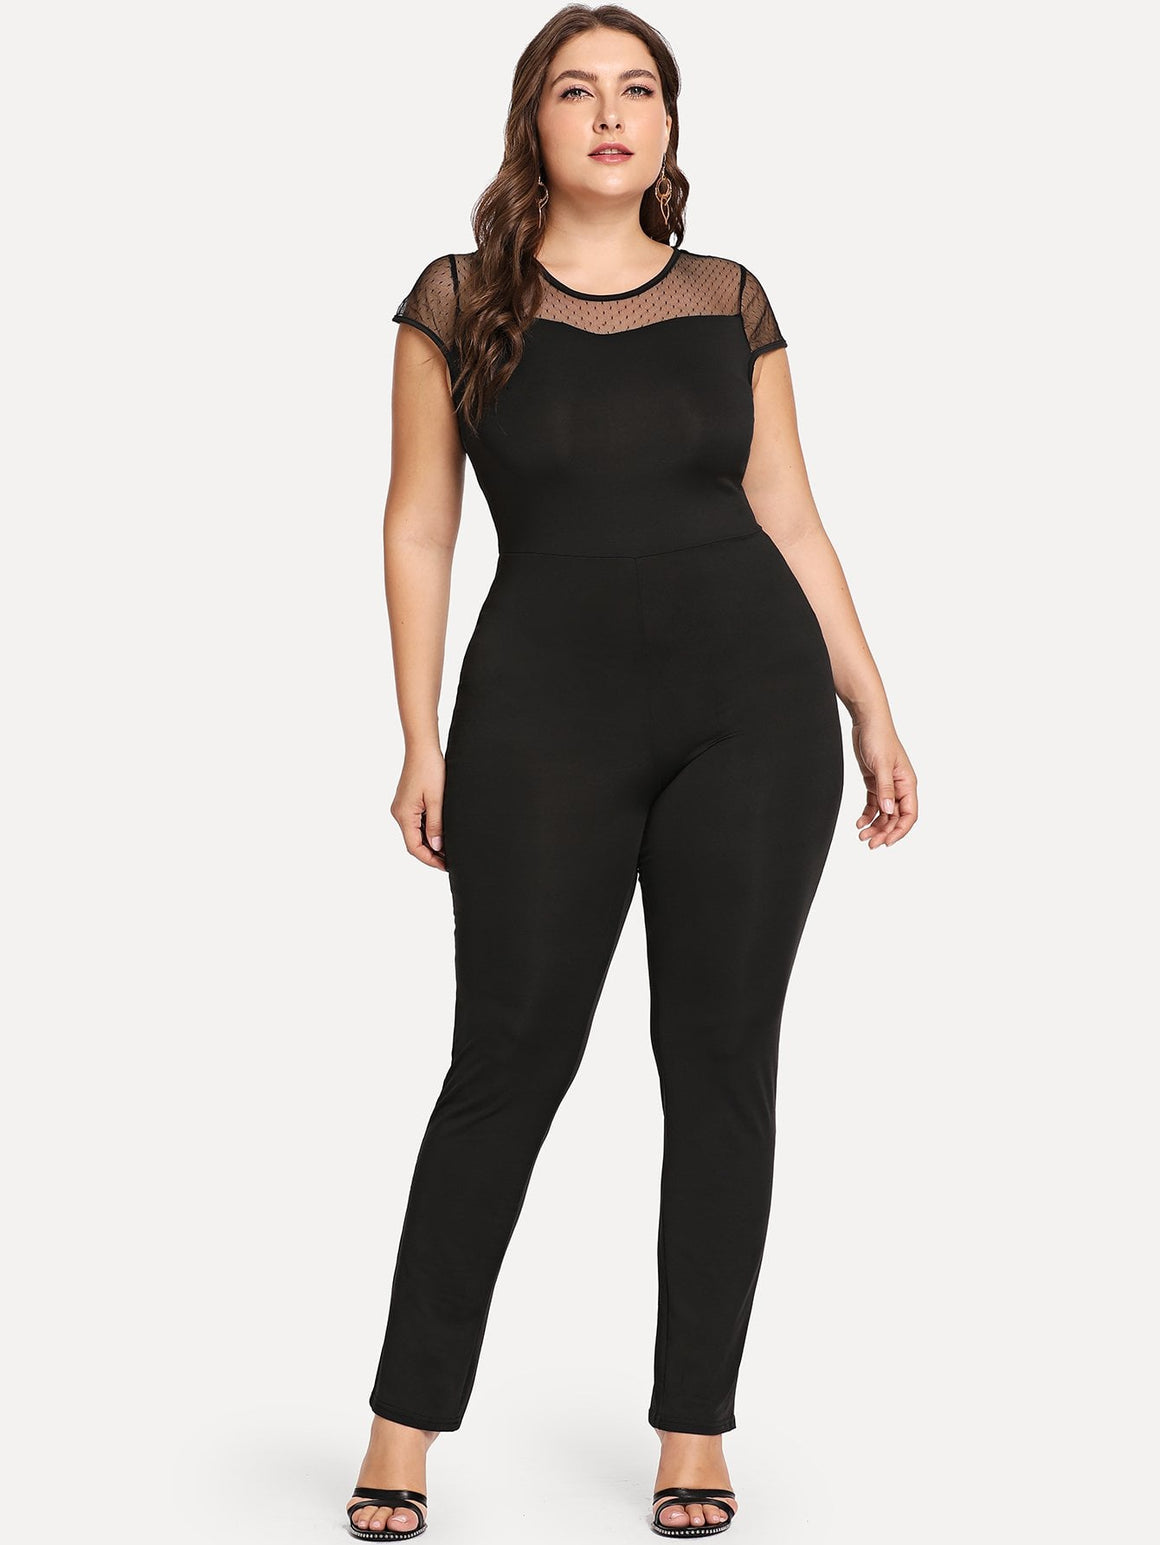 Black Mesh Sheer Jumpsuit